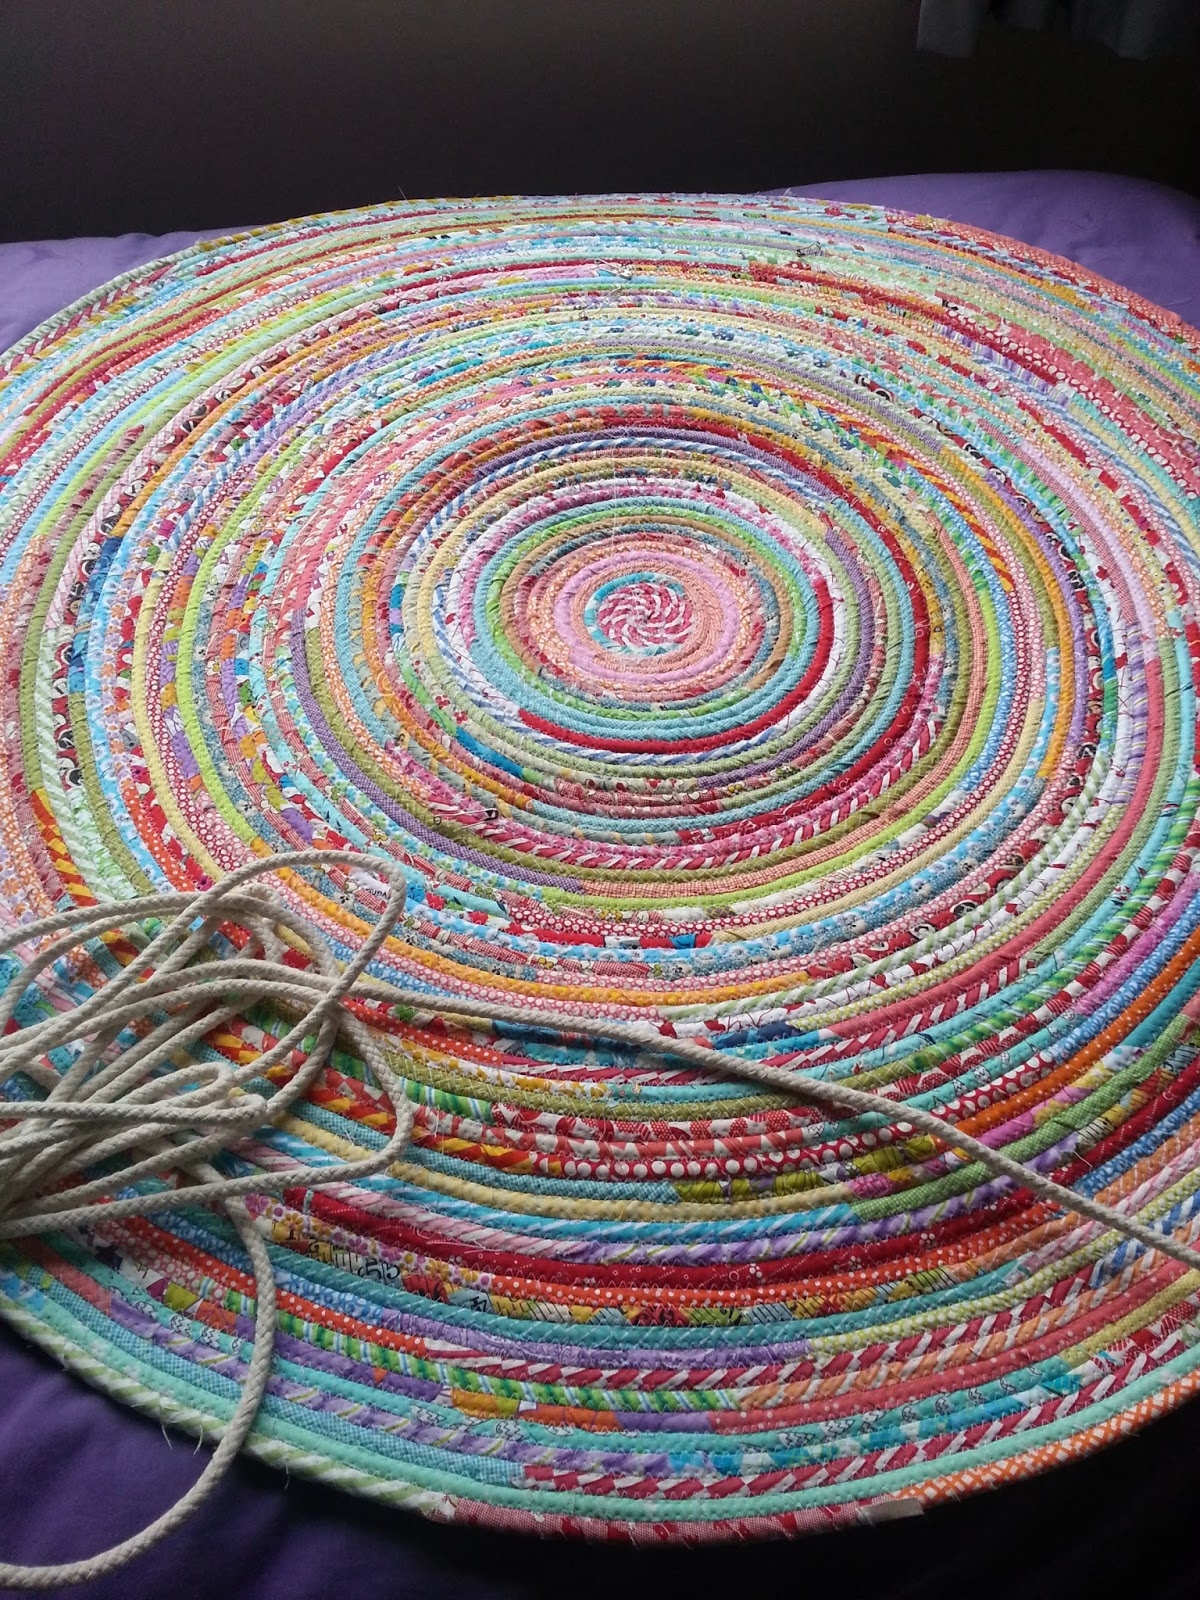 ric rac how to sew a fabric rug tutorial. Black Bedroom Furniture Sets. Home Design Ideas